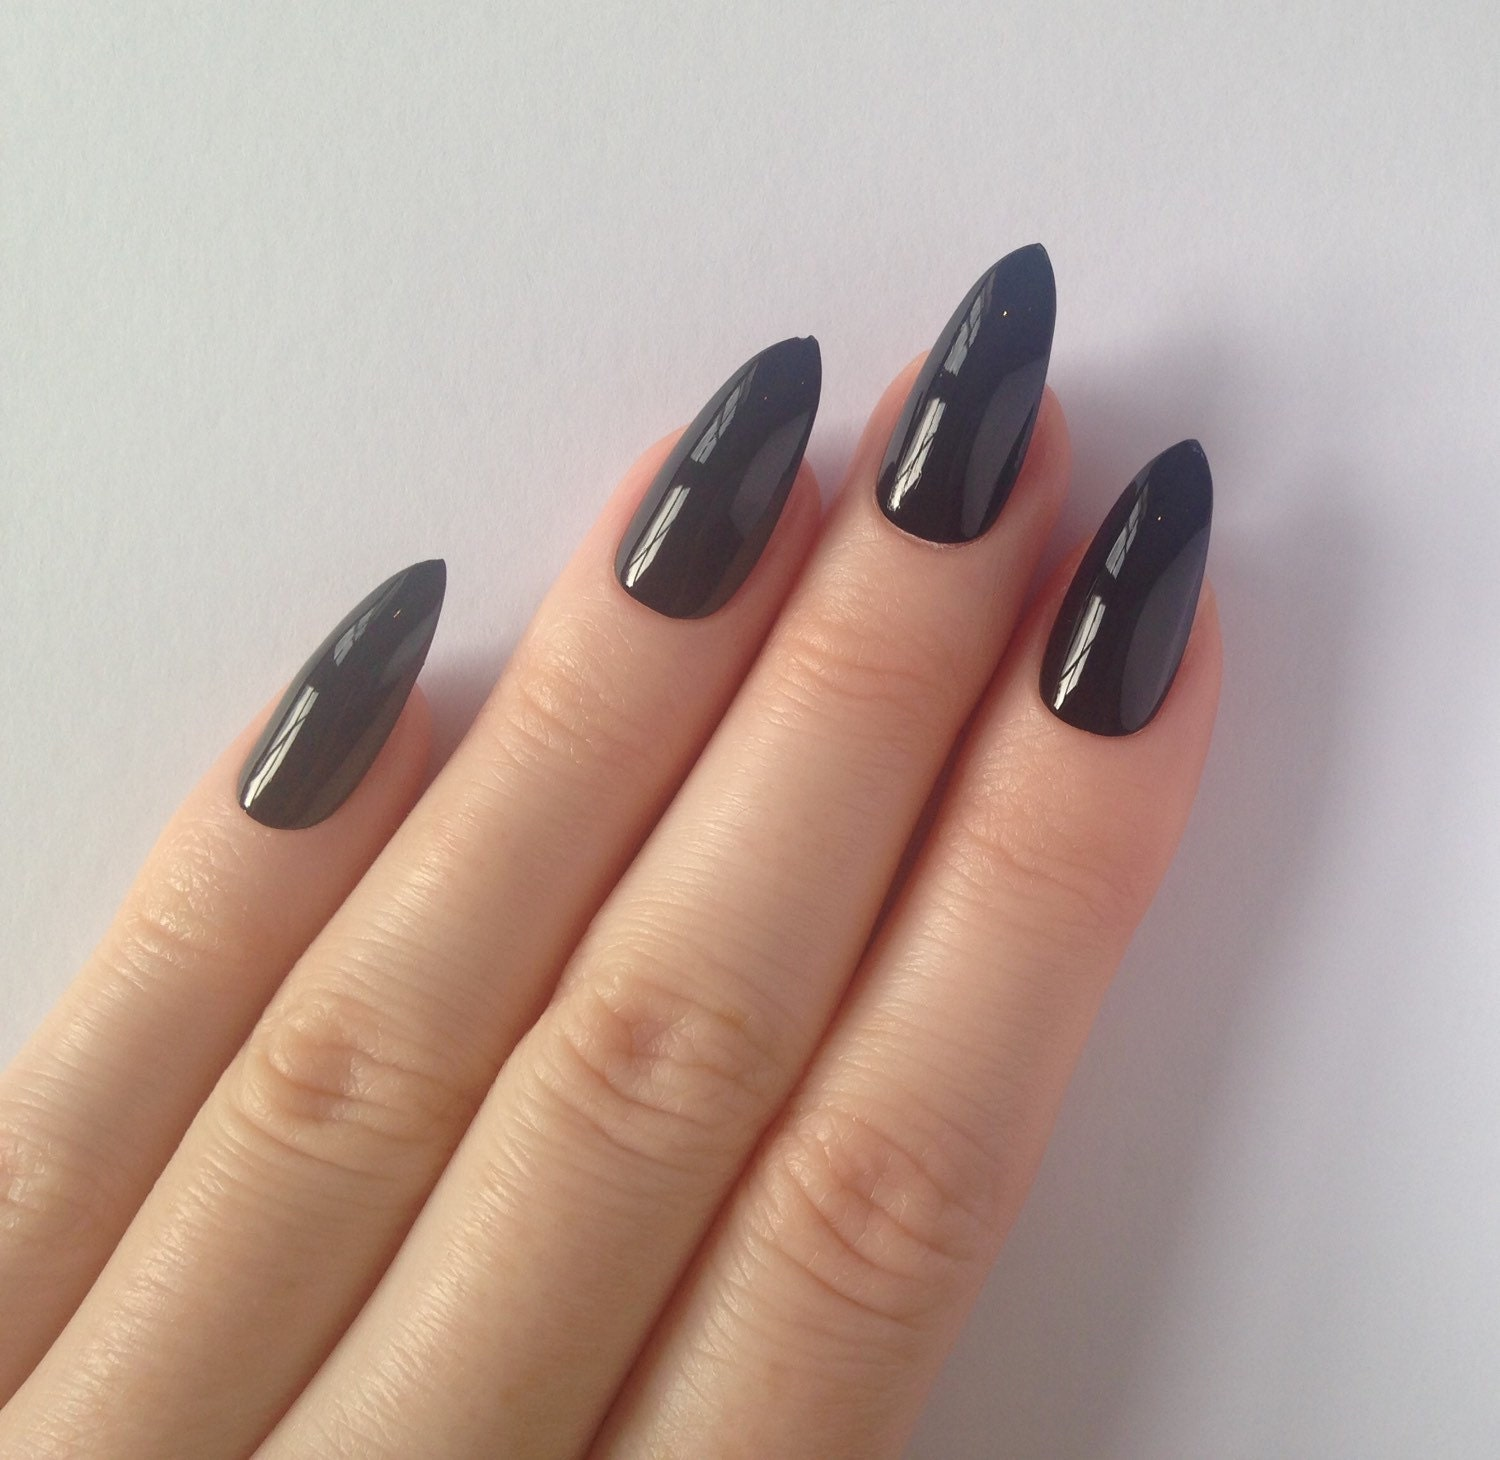 Today Live Sports: Black Stiletto nails, Nail designs, Nail art ...